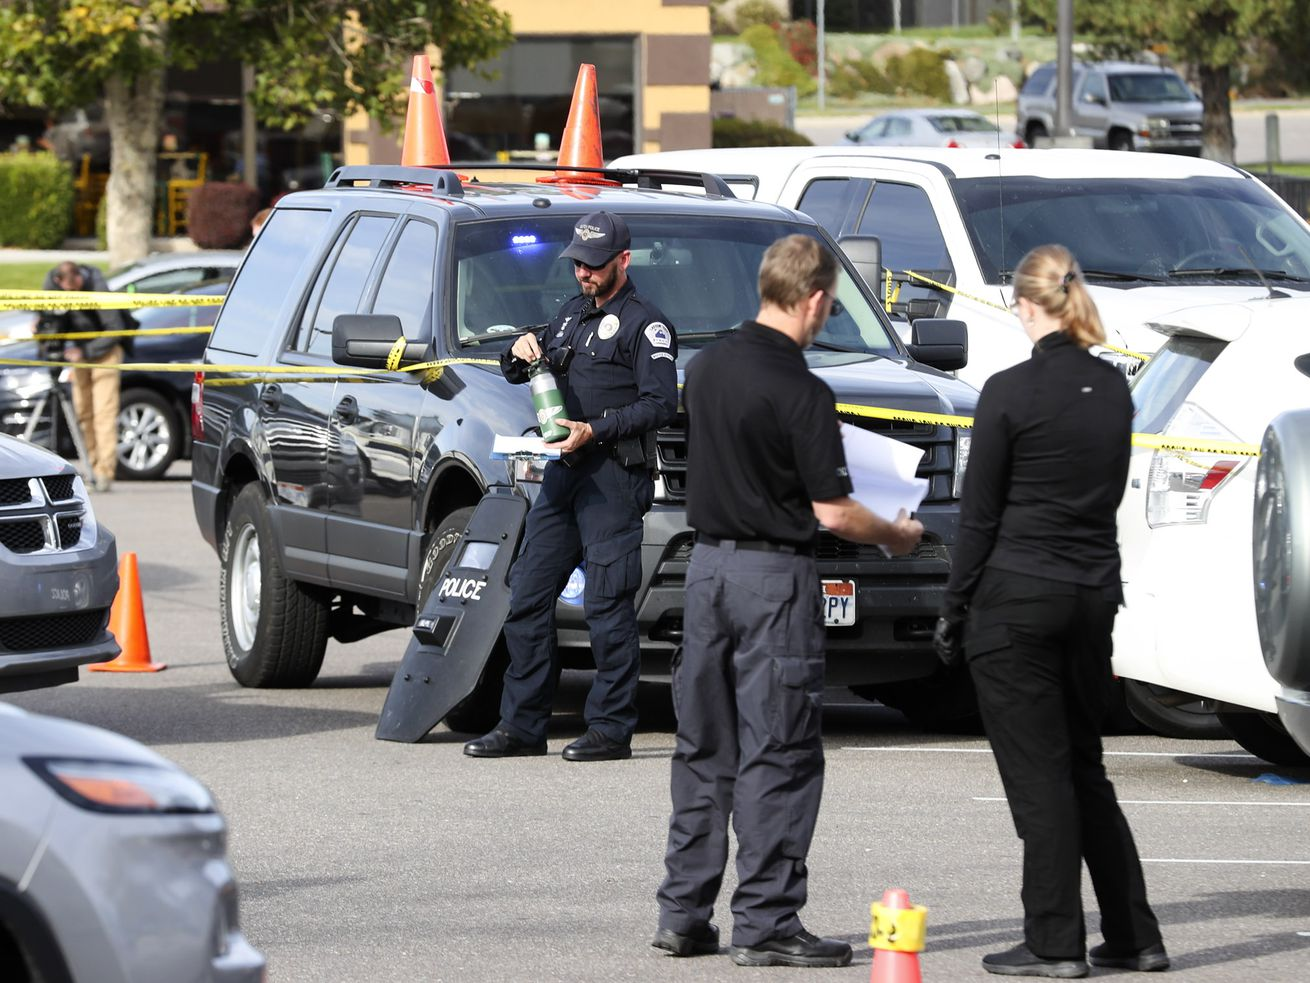 Law enforcement officials gather information at Layton Hills Mall in Layton after one person was shot on Tuesday, Oct. 8, 2019.